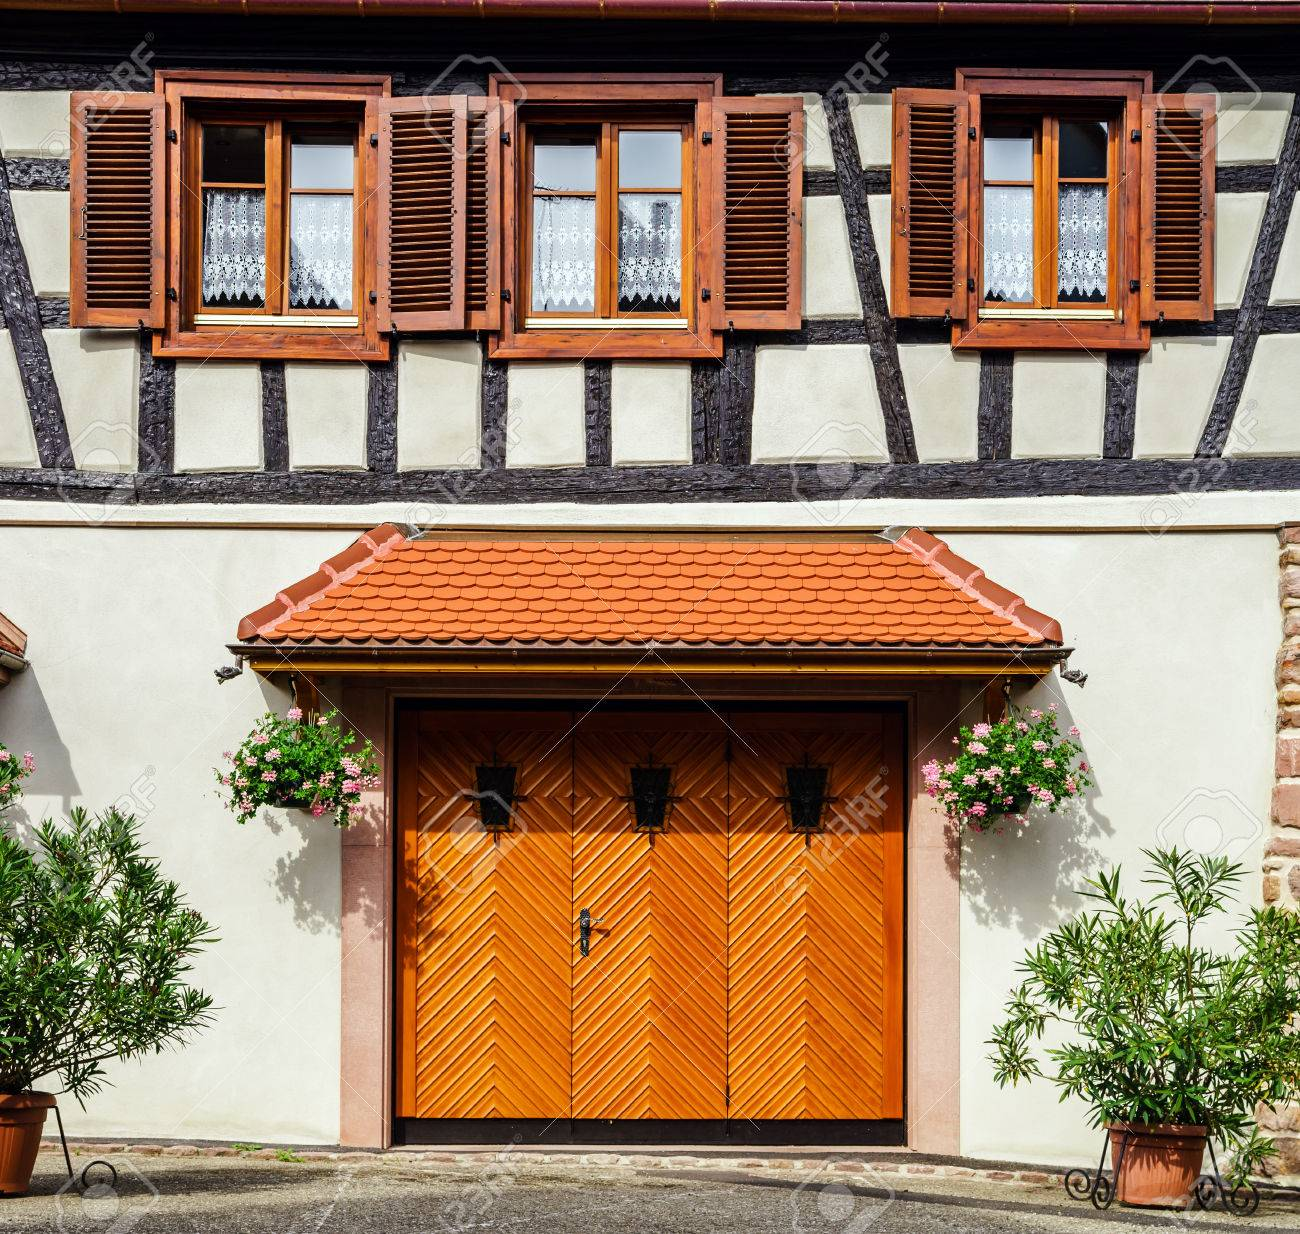 Renovated wooden garage doors in old house, Alsace, France Stock Photo - 29152154